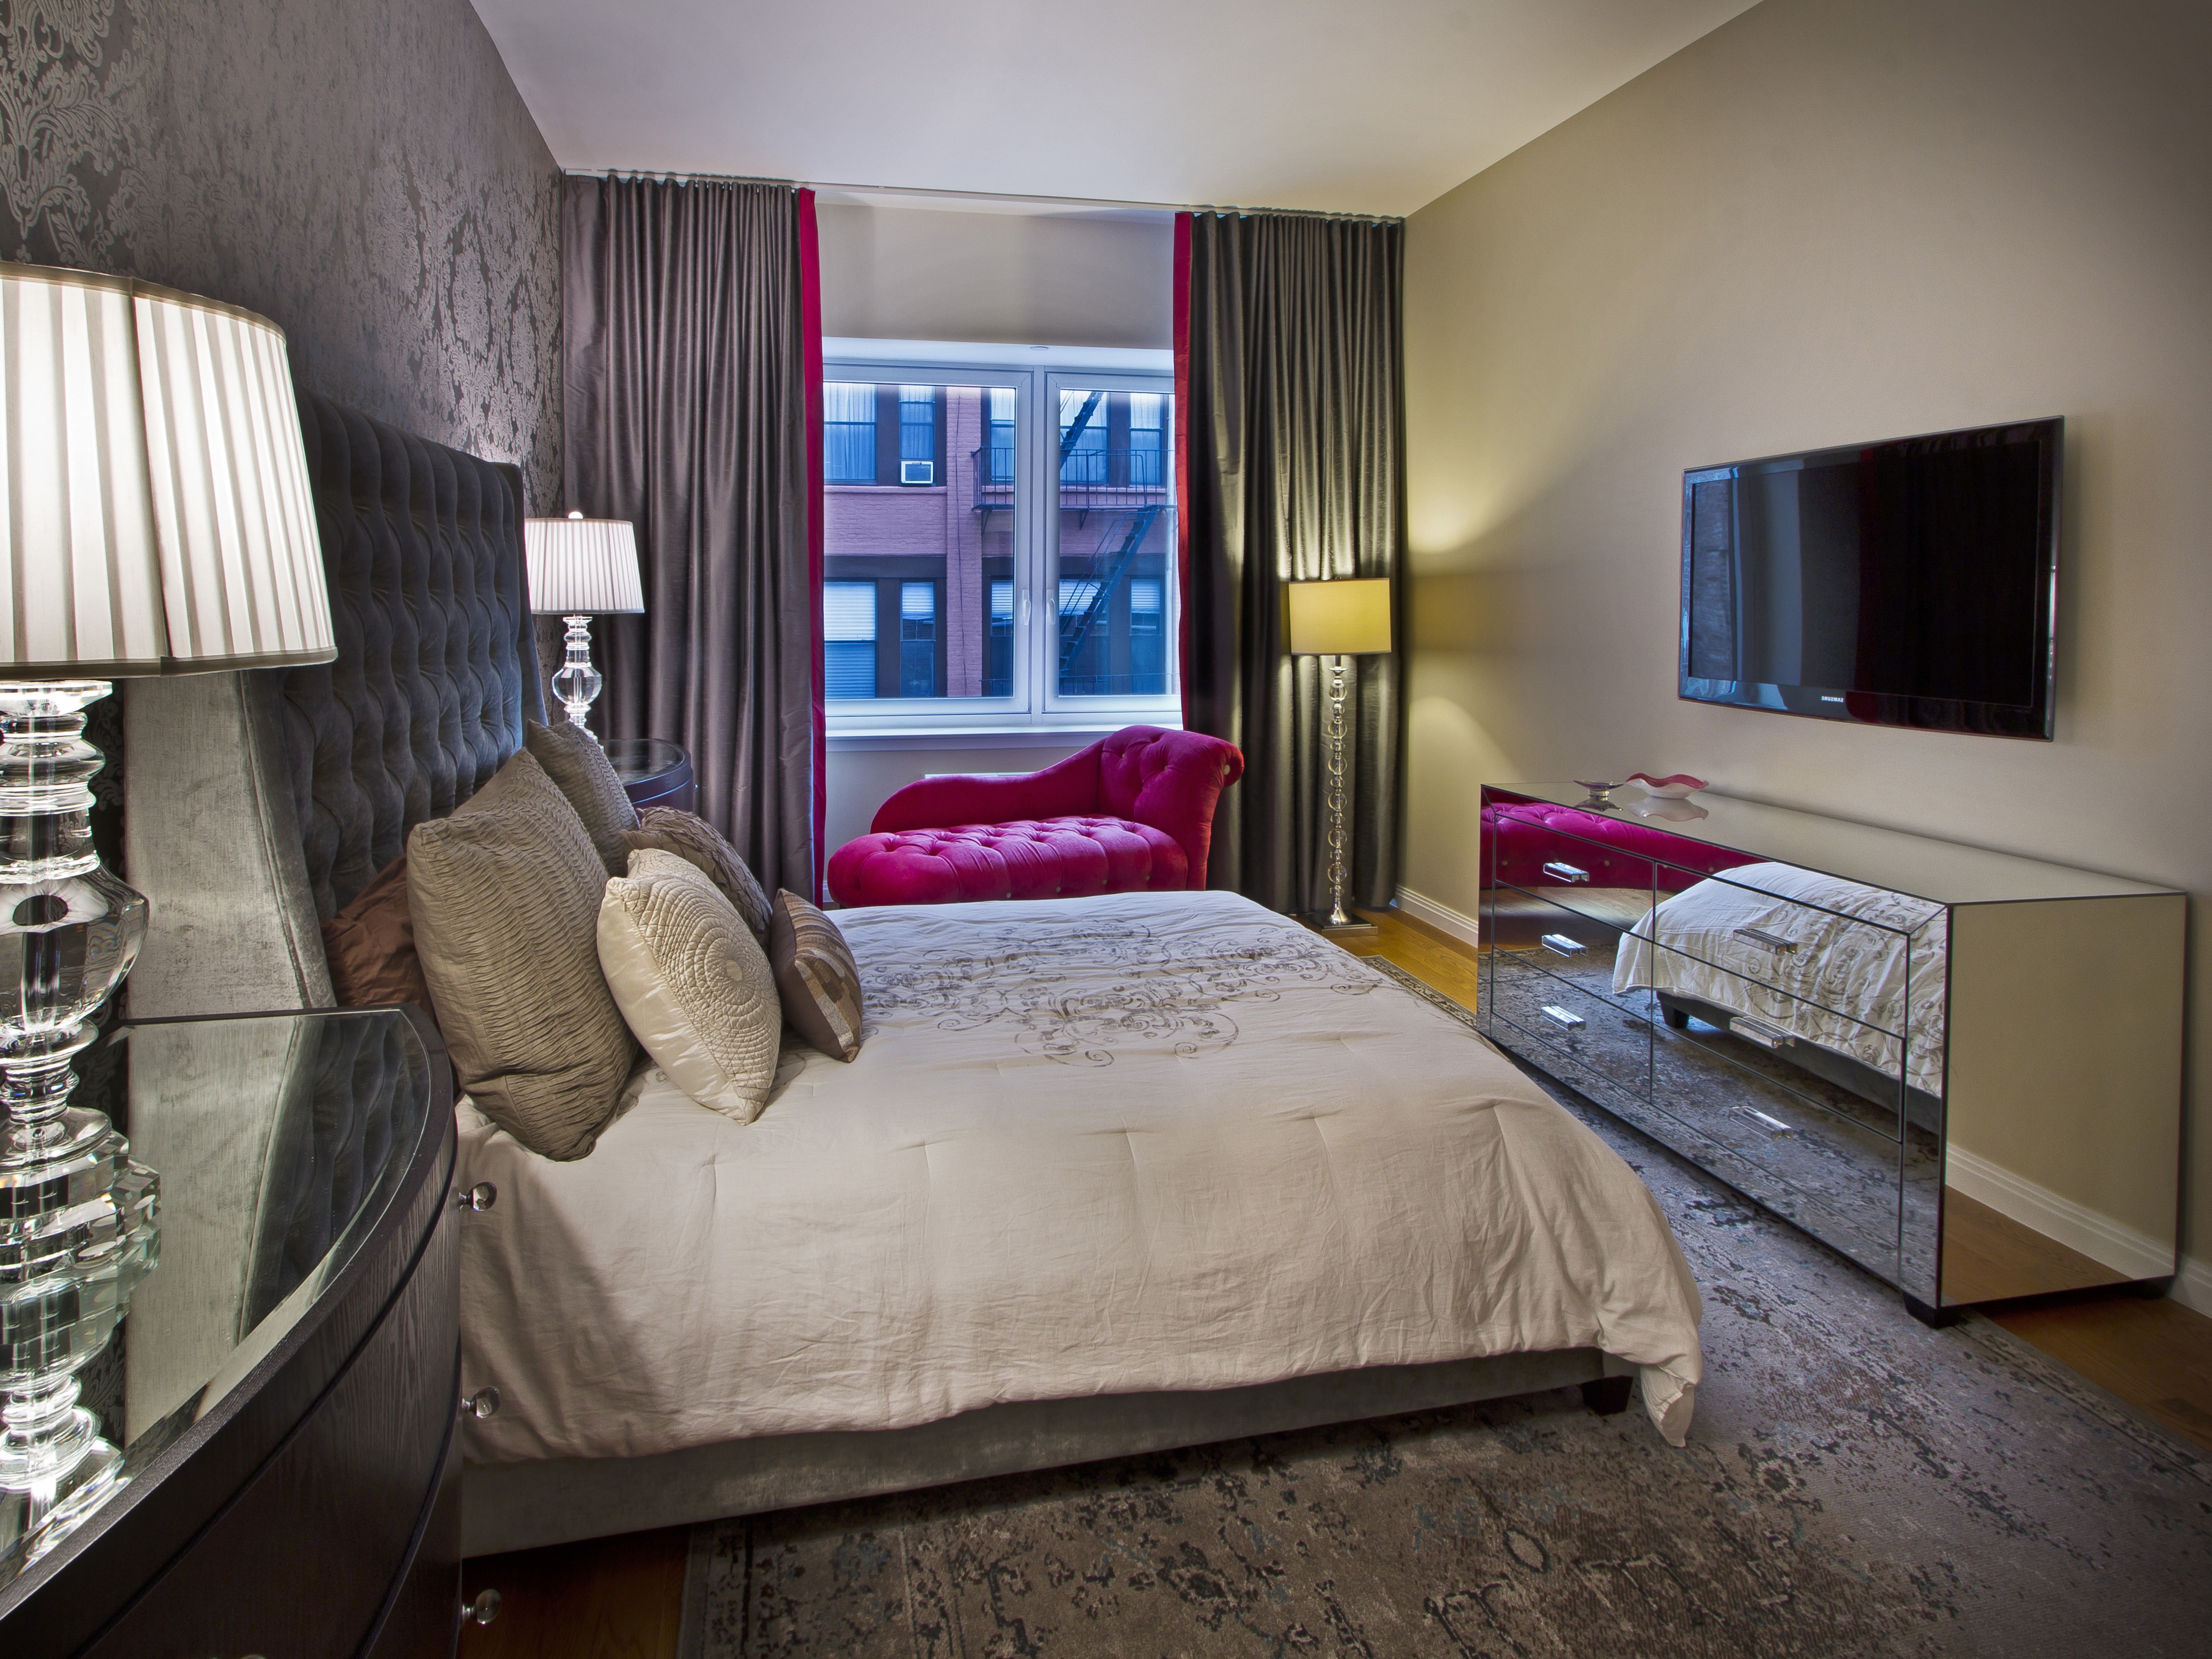 Hotel Inspired Look Apartment Bedroom Decor (View 17 of 25)